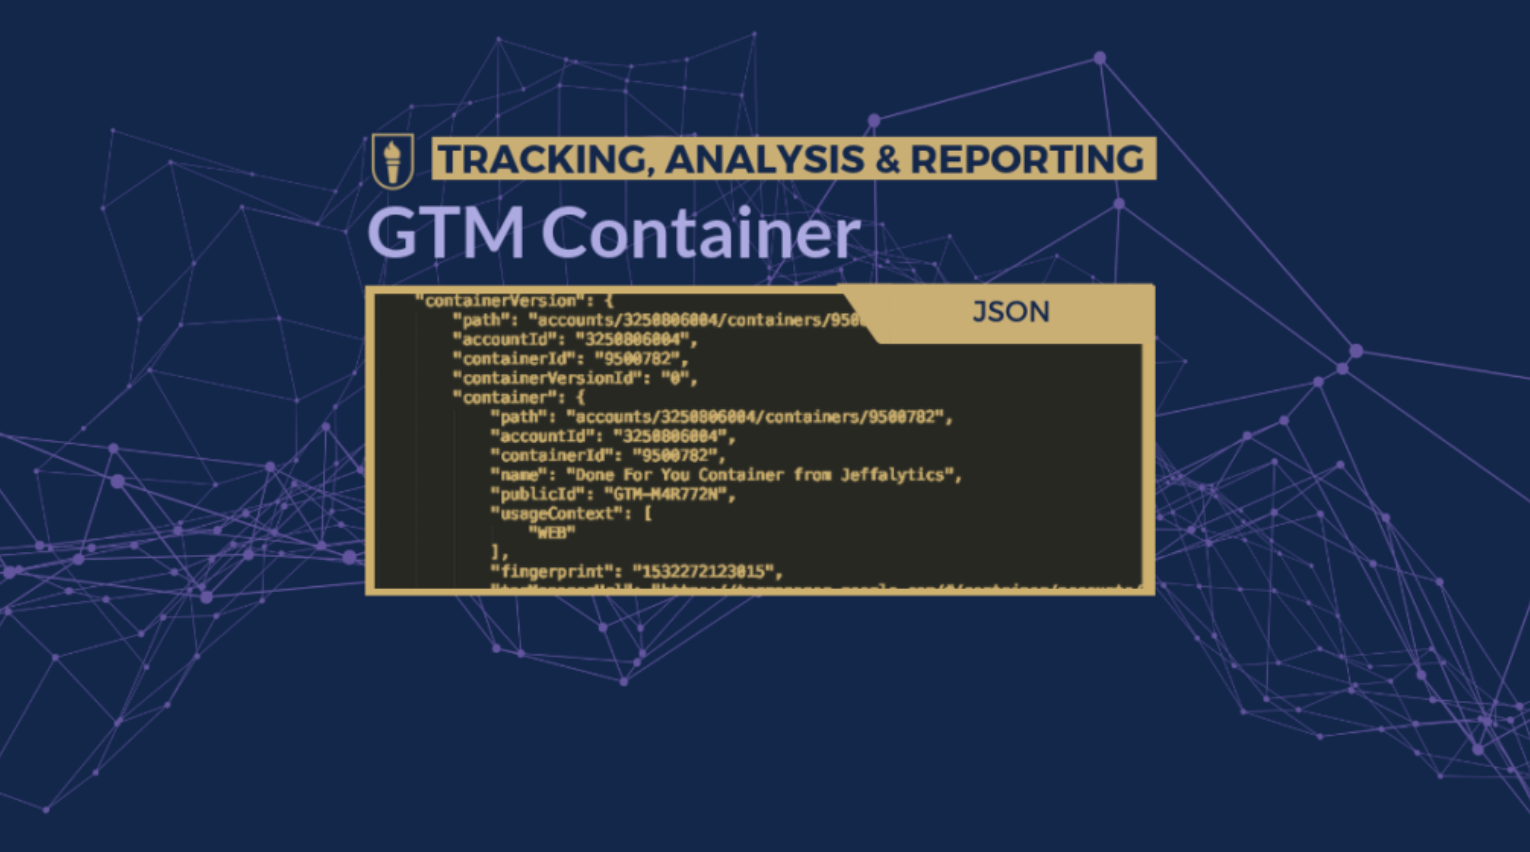 GTM Container